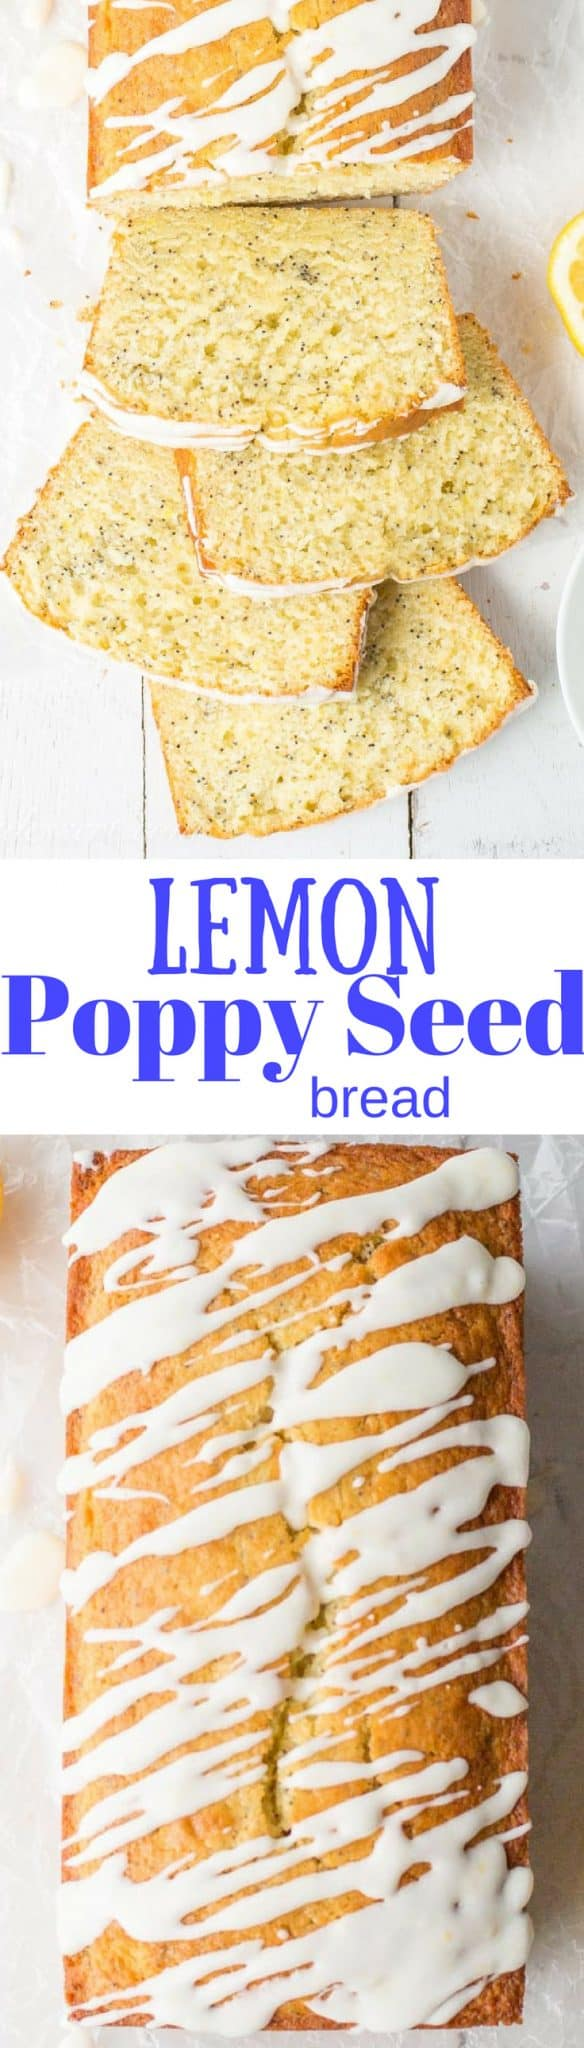 Lemon Poppy Seed Bread ~ a super easy quick bread packed with poppy seeds and lemon then topped with a simple lemon glaze. A delightful and delicious loaf cake great served with breakfast, brunch, afternoon tea or even dessert. www.savingdessert.com